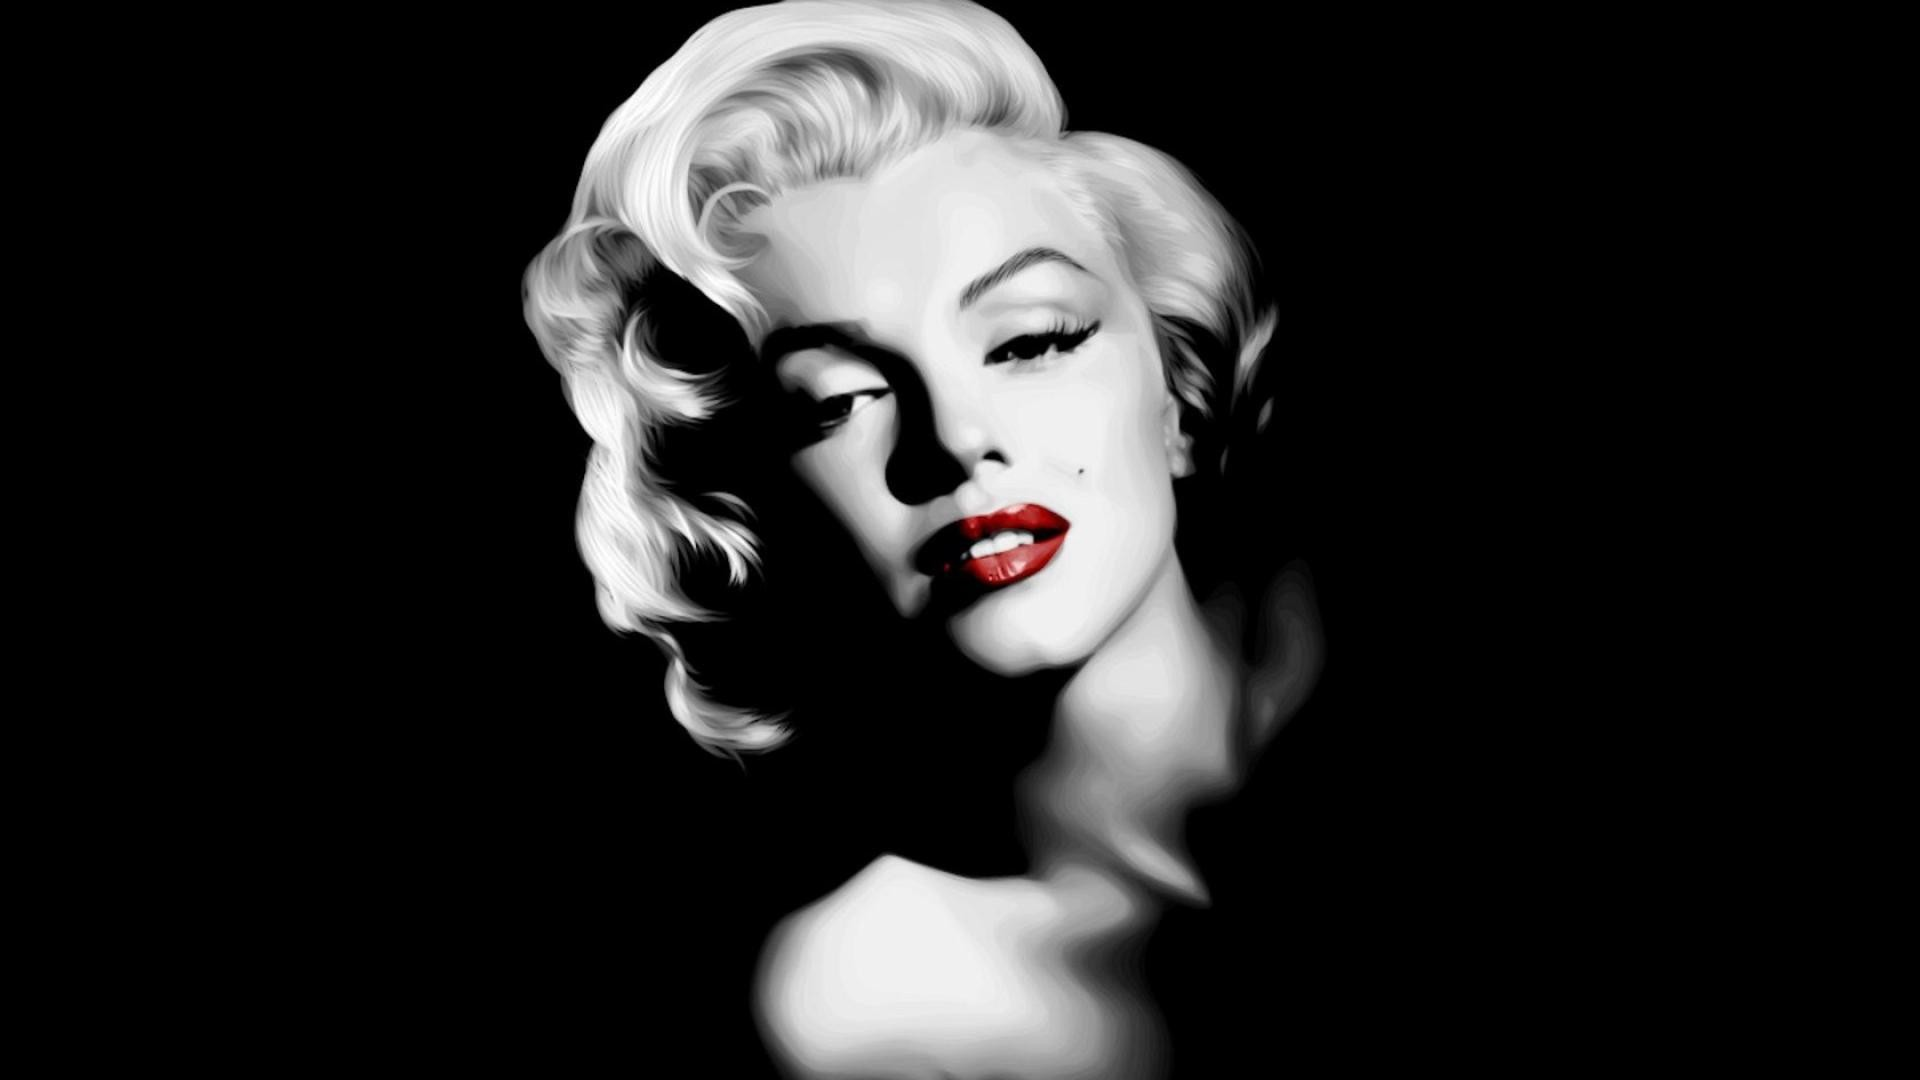 1920x1080 Marilyn Monroe Poster Black And White Image Tips